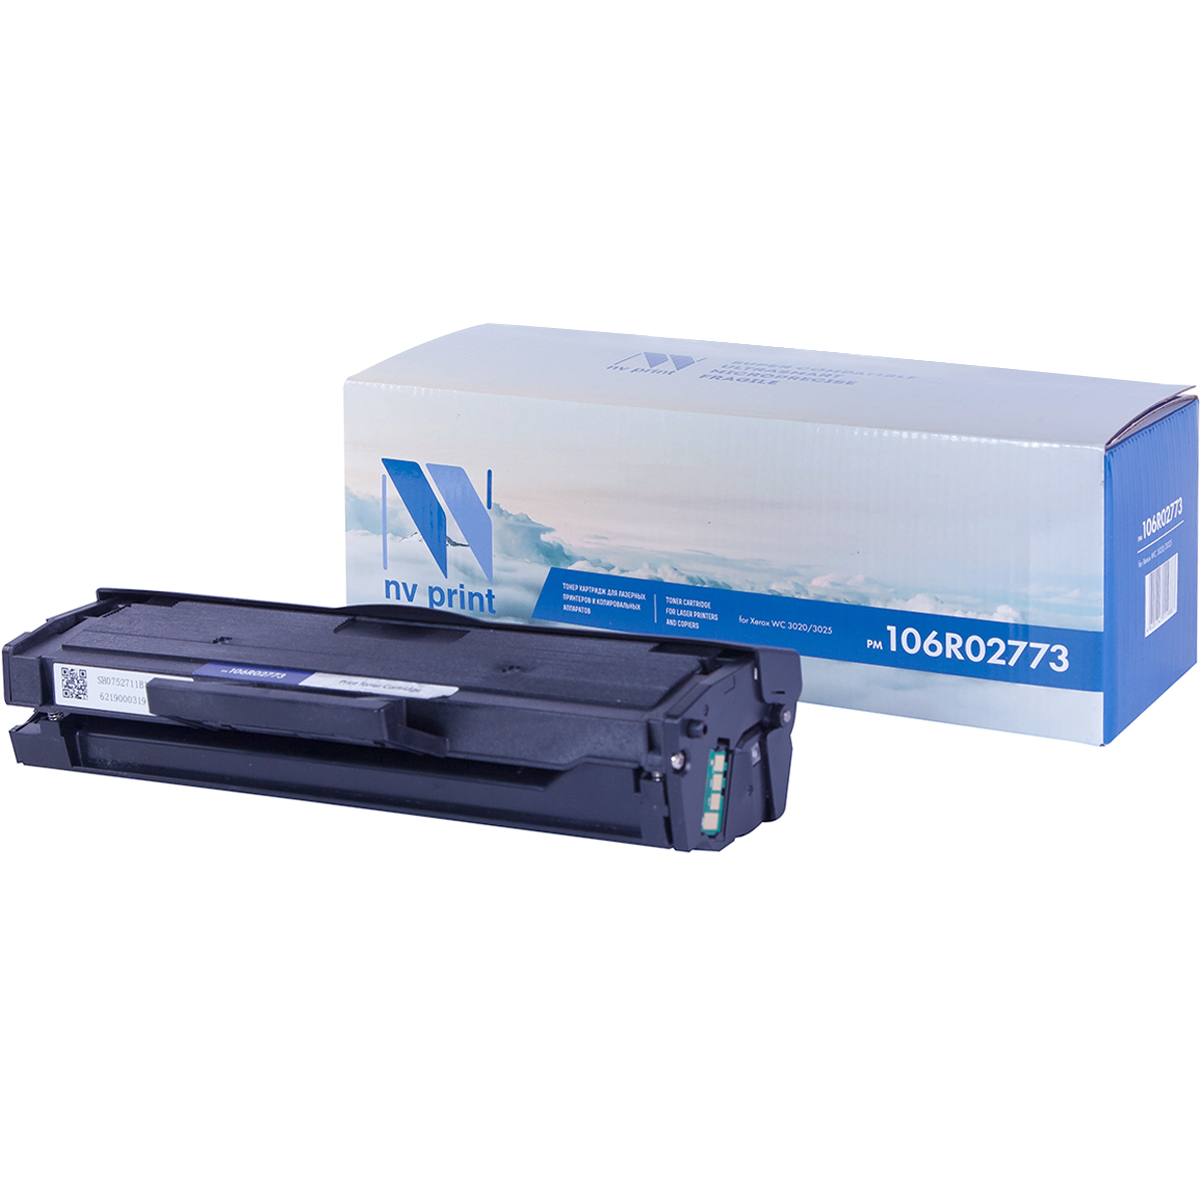 Фото - Картридж NV Print 106R02773 для Xerox Phaser 3020/WorkCentre 3025 (1500k) картридж t2 для xerox phaser 3020 workcentre 3025 1500стр черный 106r02773